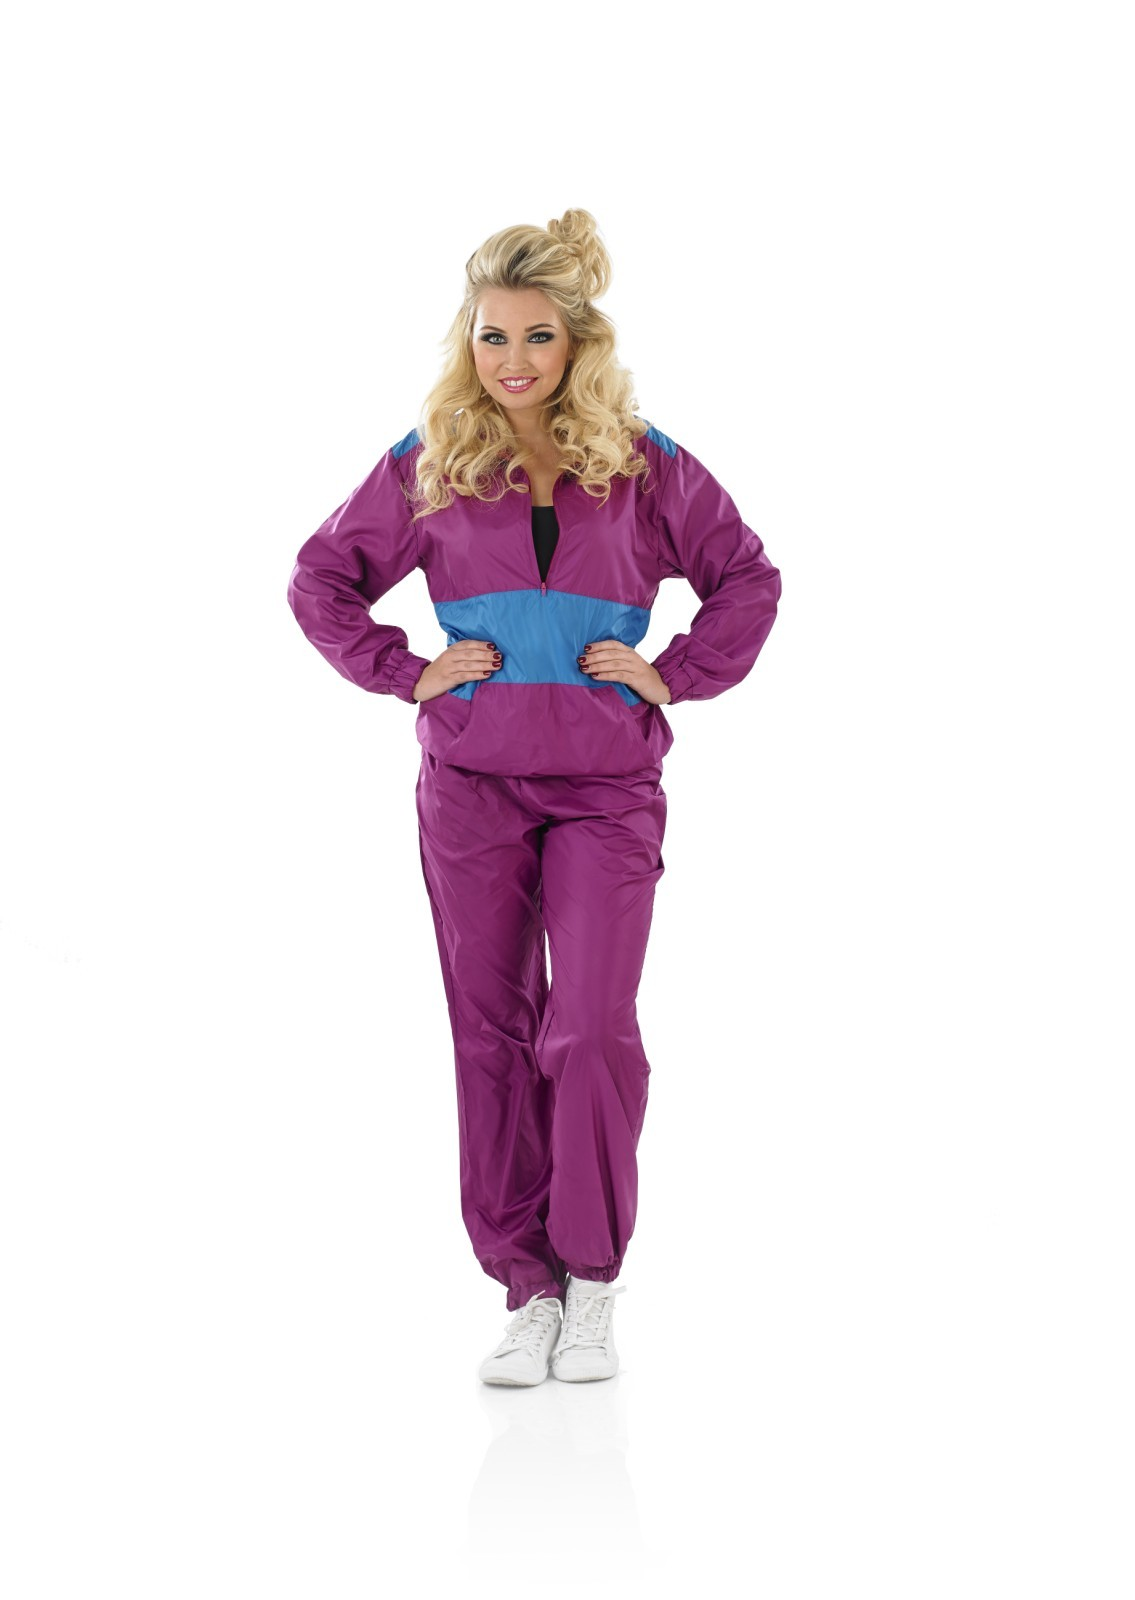 Ladies Shell Suit Costume For 90s Scouser Fancy Dress ...  Ladies Shell Su...